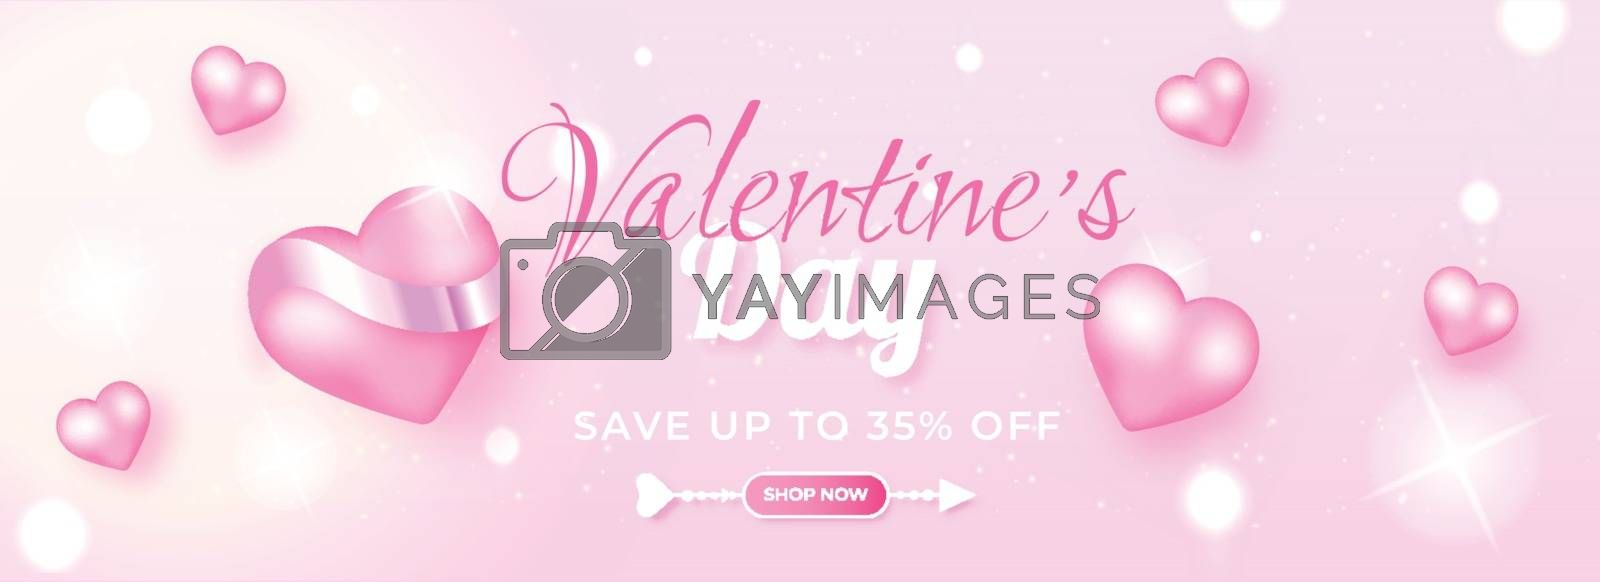 Royalty free image of Realistic heart shapes with 35% discount offer on shiny pink bok by aispl